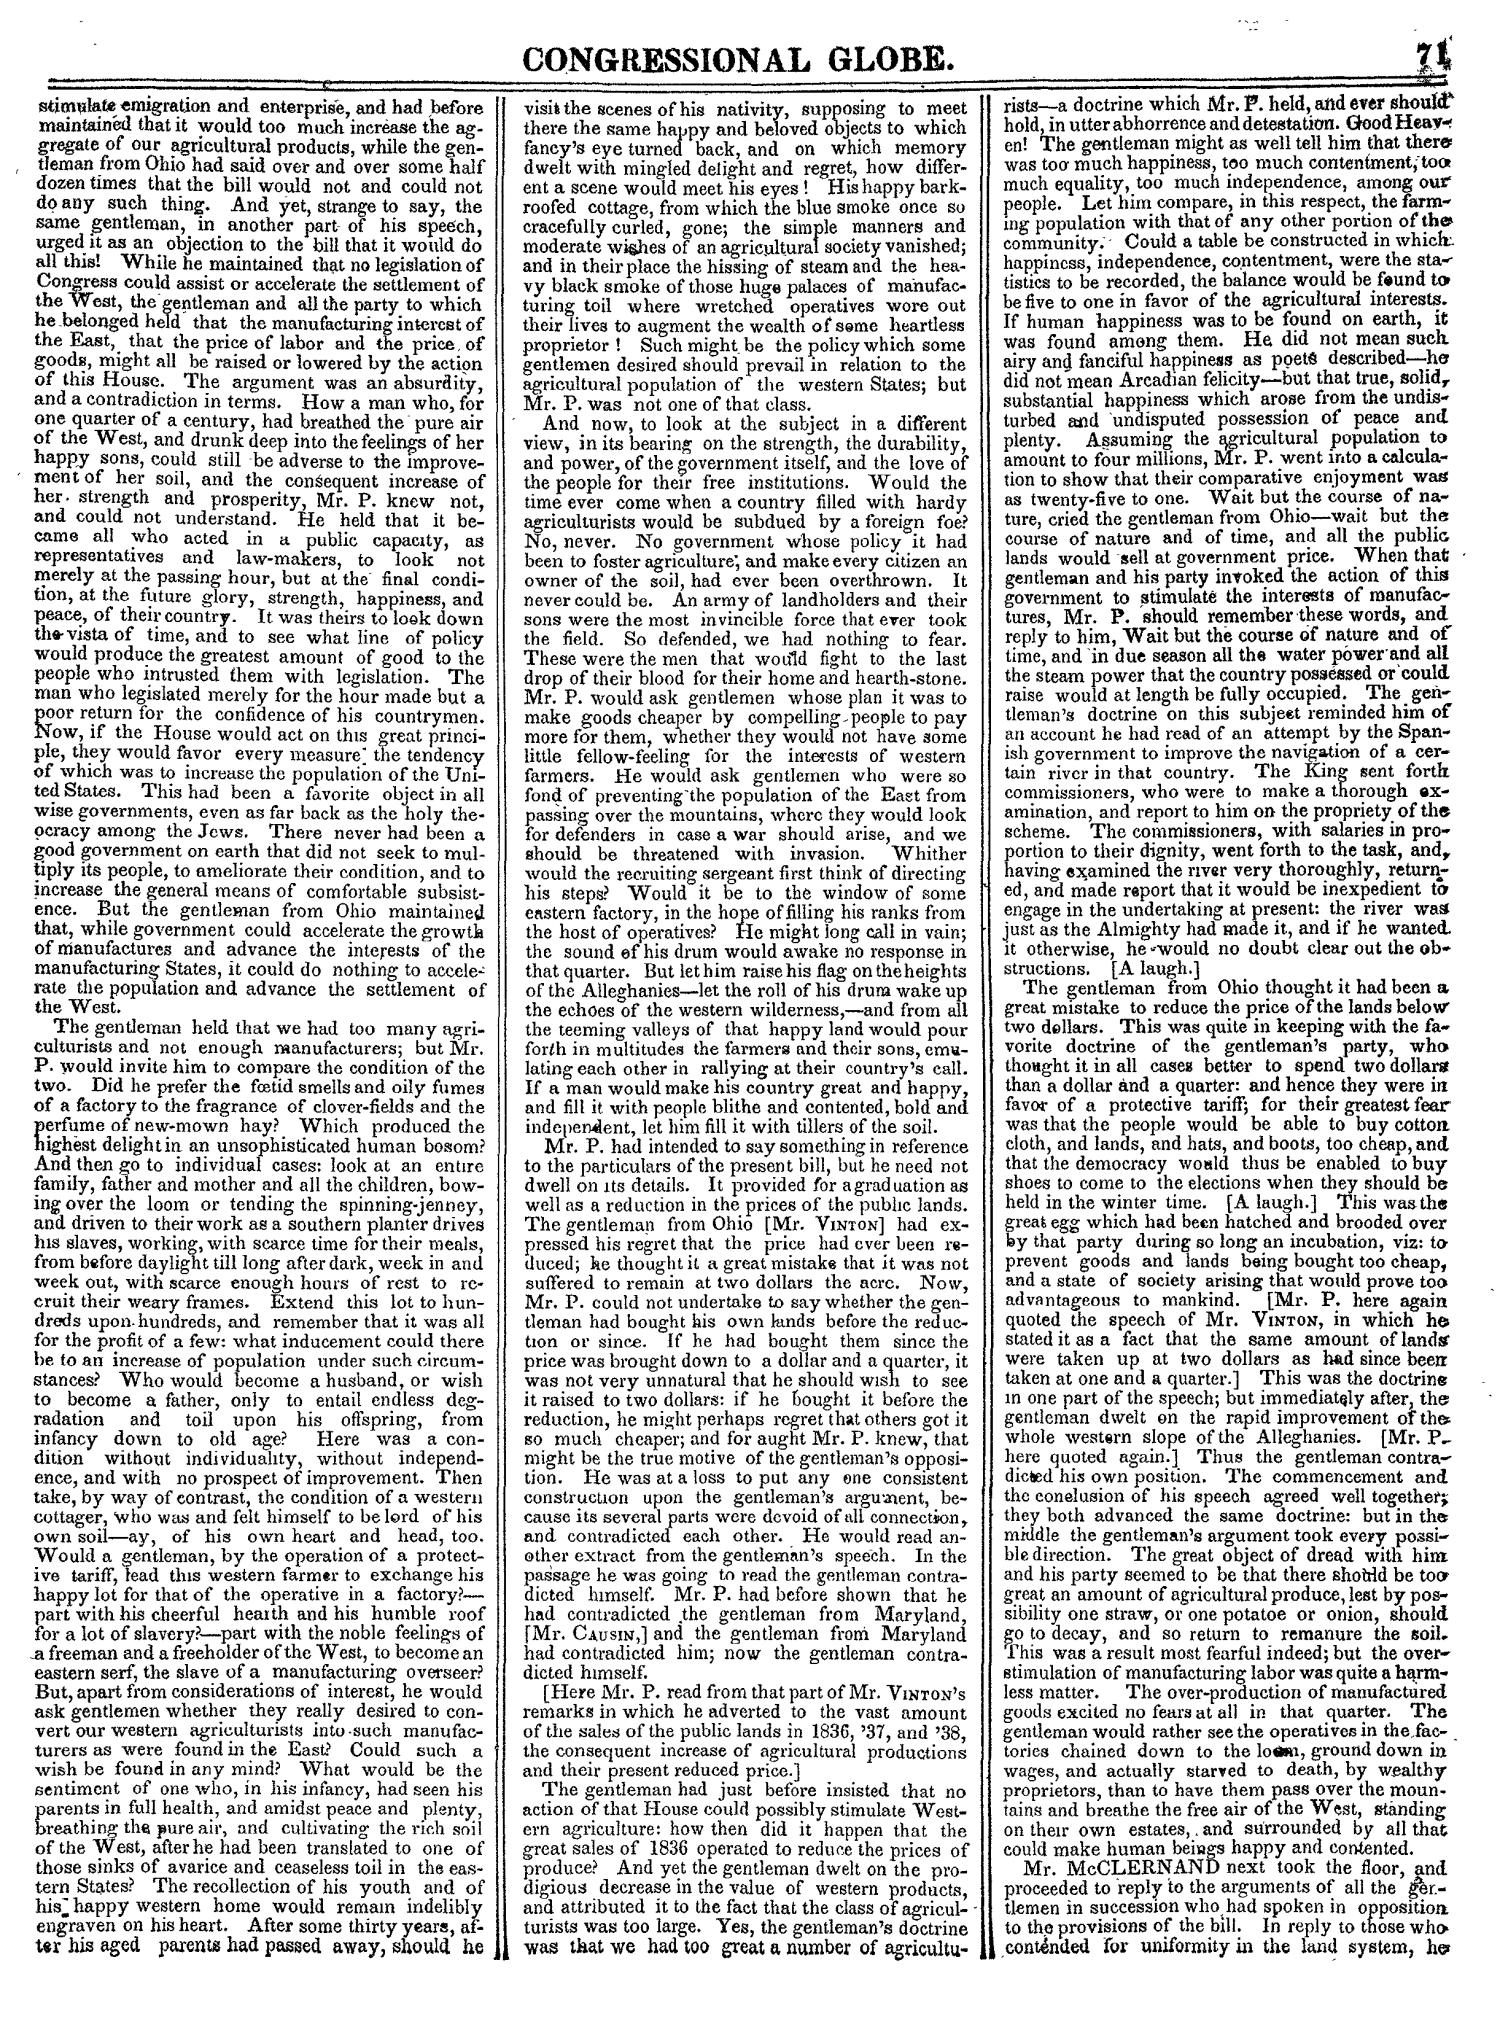 The Congressional Globe, Volume 14: Twenty-Eighth Congress, Second Session                                                                                                      71